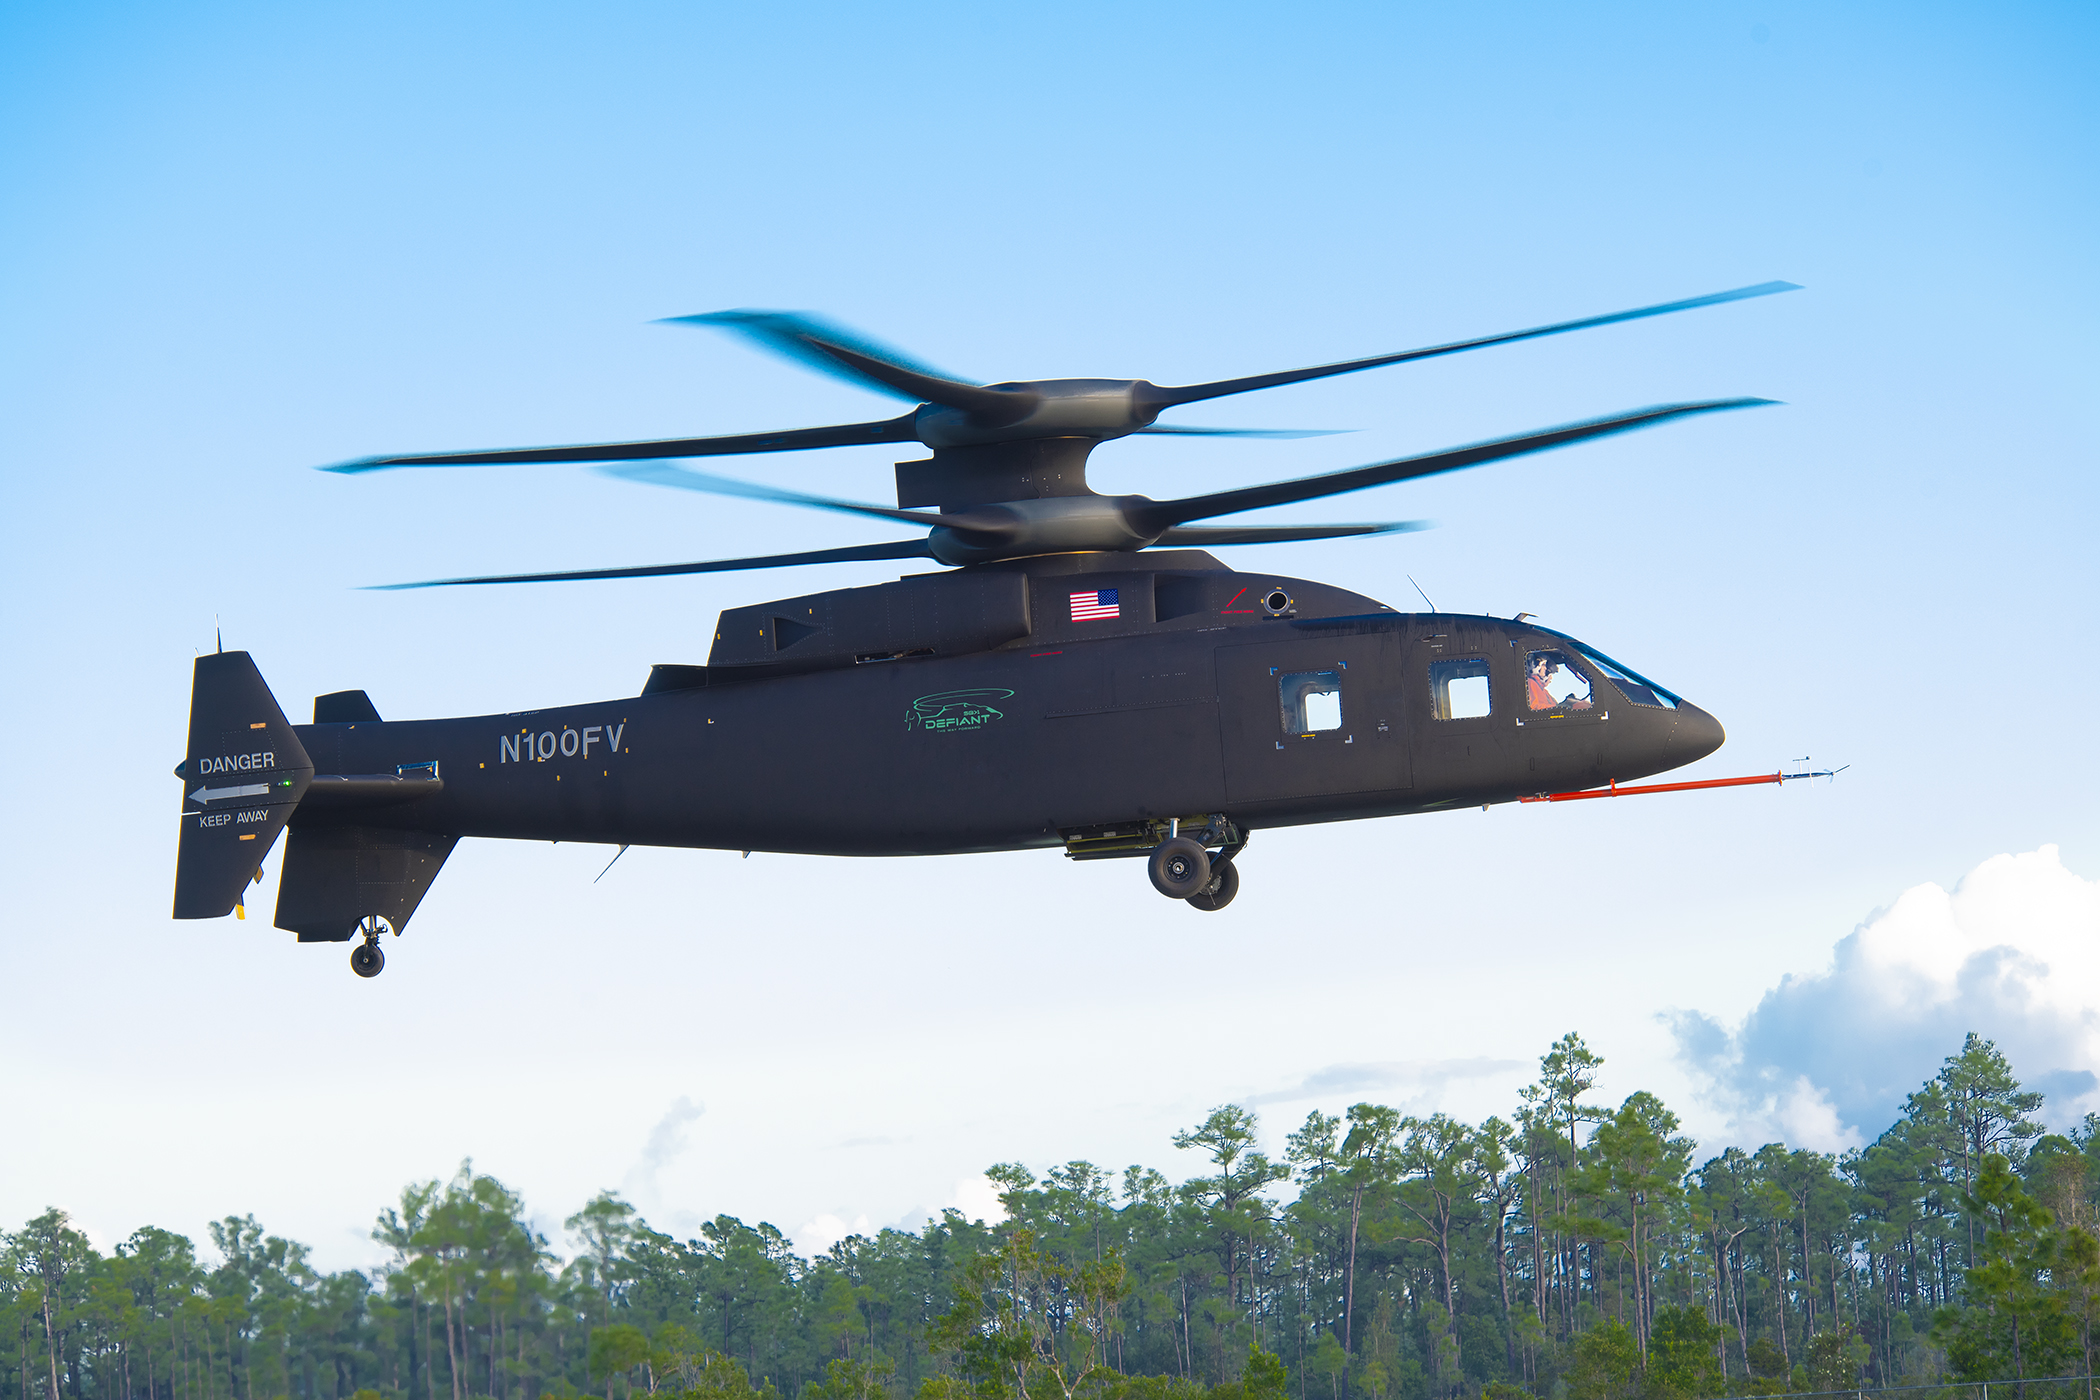 Sikorsky-Boeing's SB-1 Defiant coaxial technology demonstrator for the Army's Joint Multi-Role Technology Demonstrator program has flown more than 100 knots as of Jan. 13 in its flight test program at Sikorsky's facility in West Palm Beach, Fla. (Courtesy of Lockheed Martin)